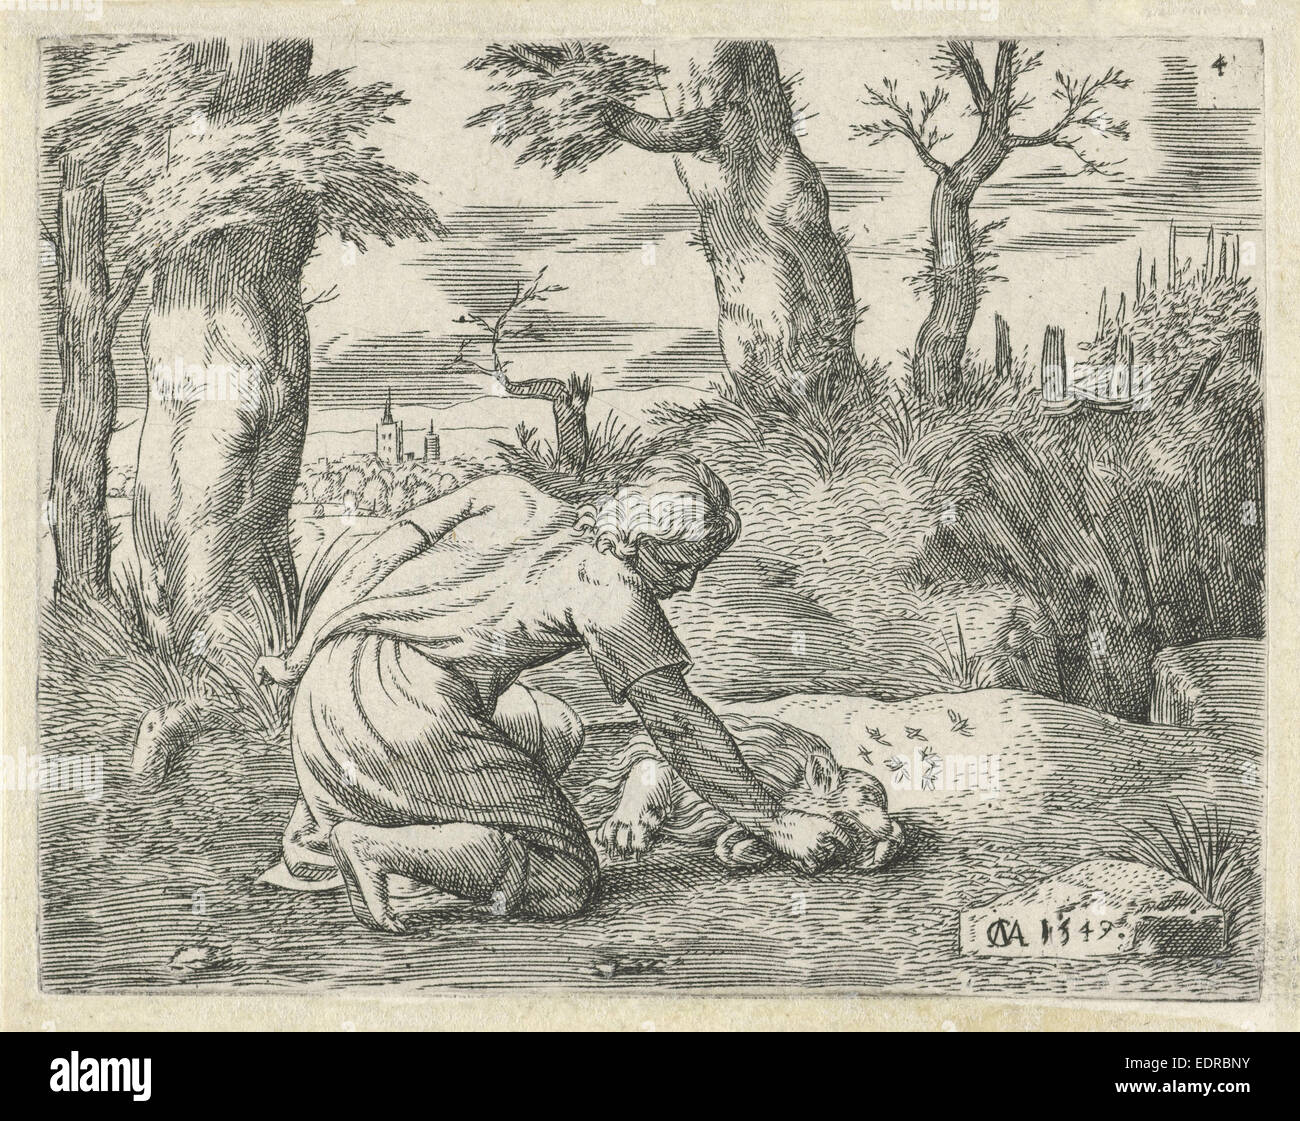 Simson find honey in the dead lion, Cornelis Massijs, 1549 Stock Photo